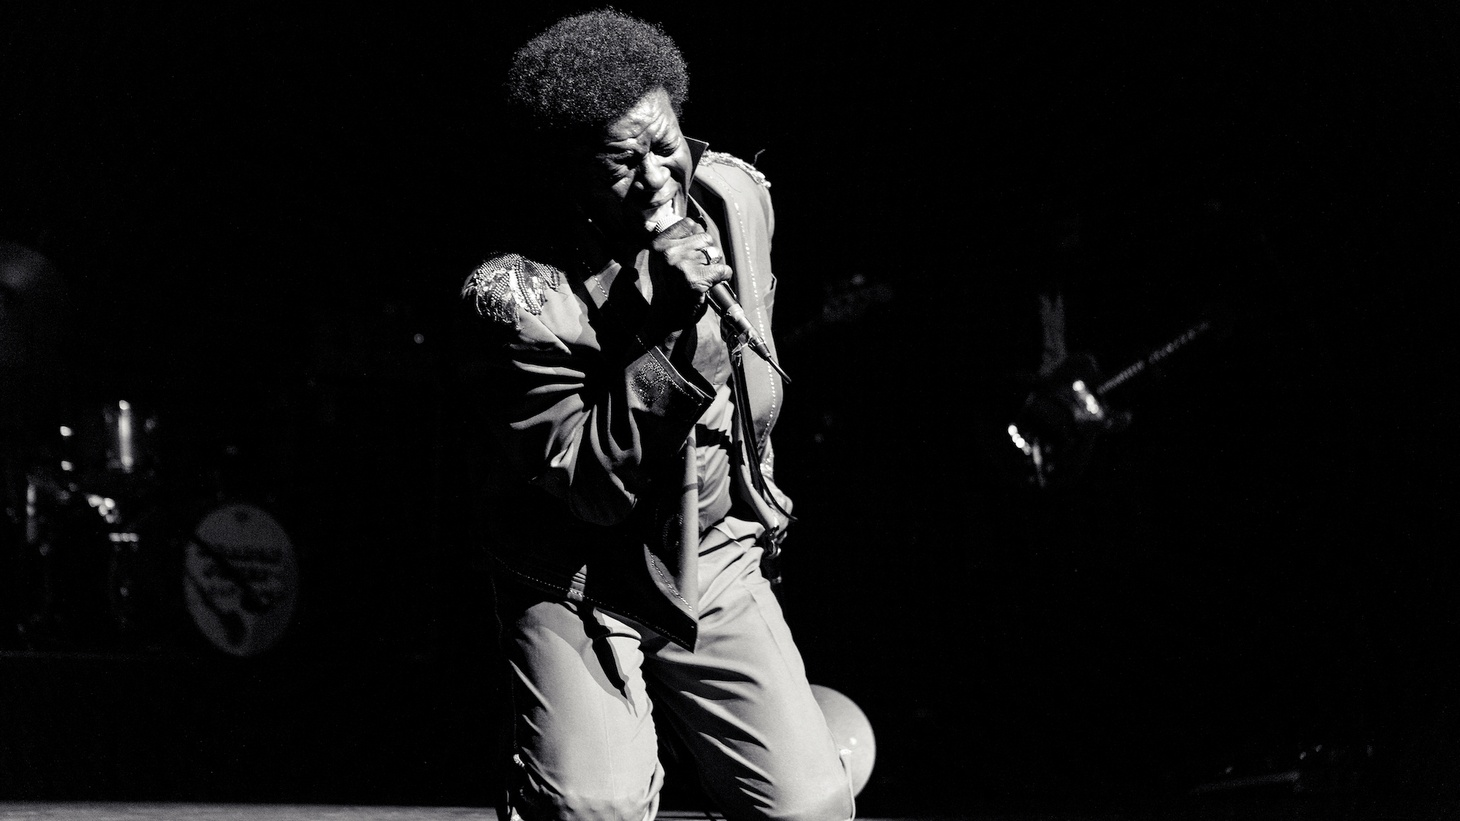 The fourth and final recording by Charles Bradley is a 10-song celebration culled together by friends and family. A collection of new and never released songs recorded during the creation of each of his albums.